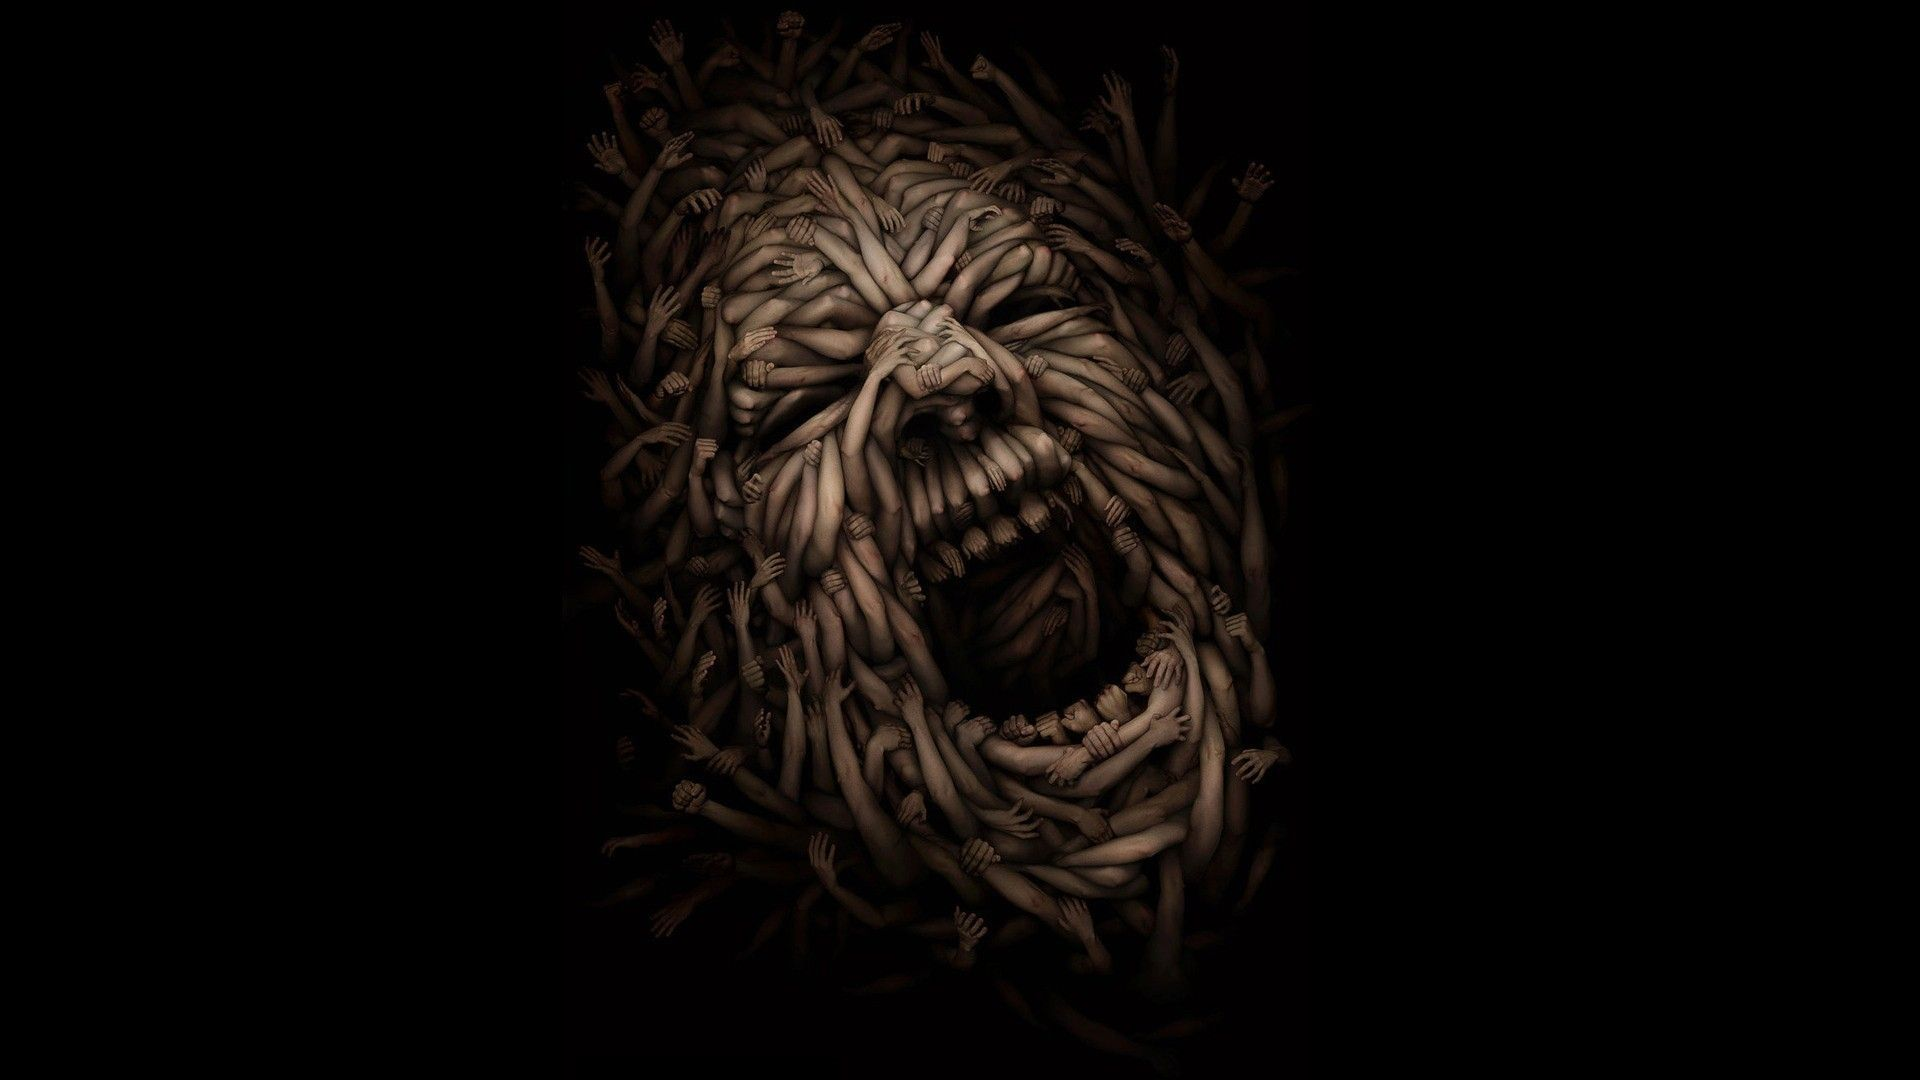 Hands Screaming Faces Illusion Fresh New Hd Wallpaper [Your